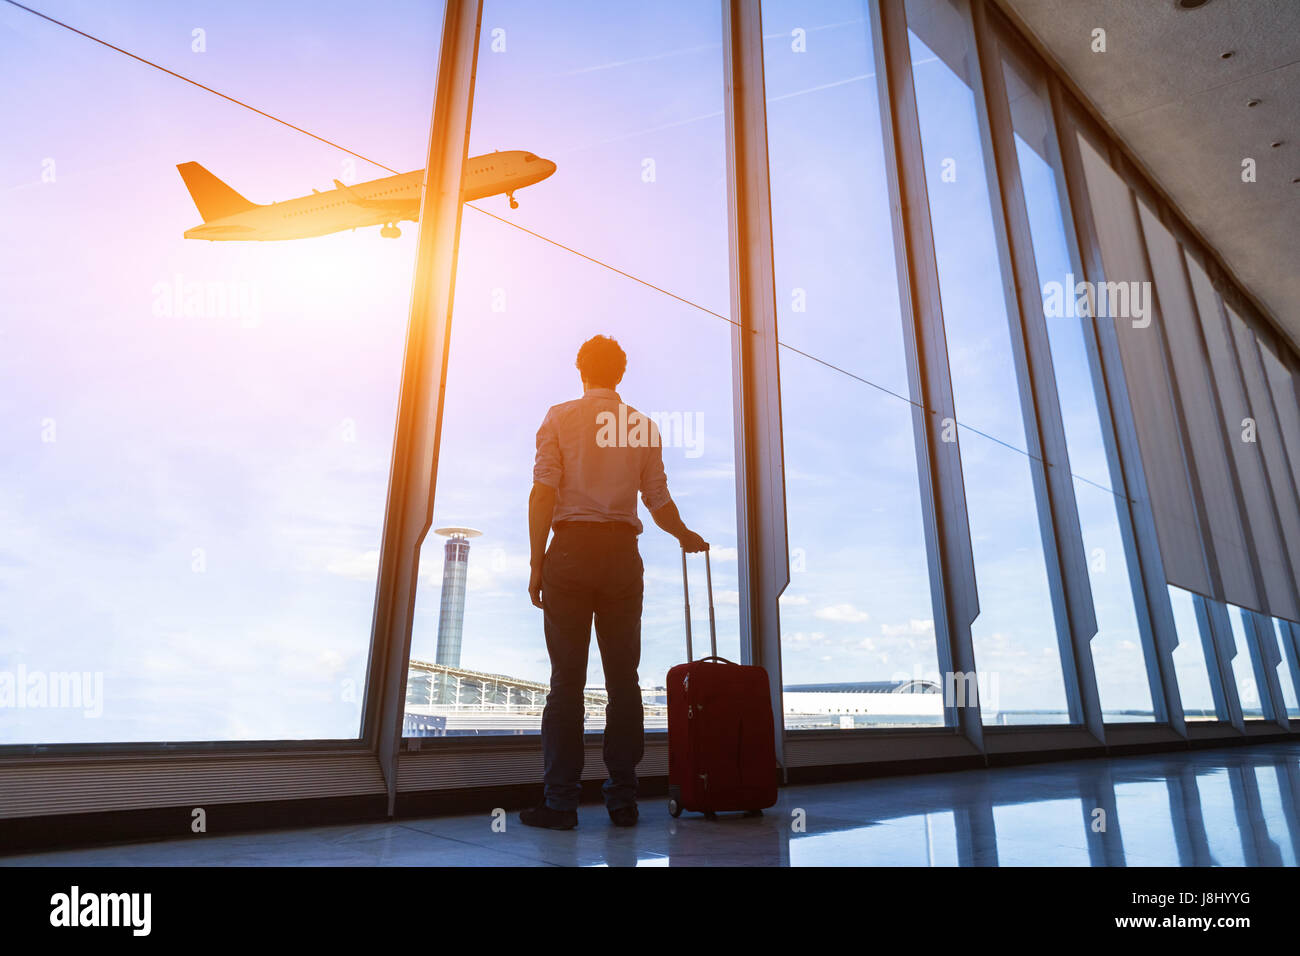 Businessman with suitcase at airport international departure gate looking at flying airplane through the windows - Stock Image